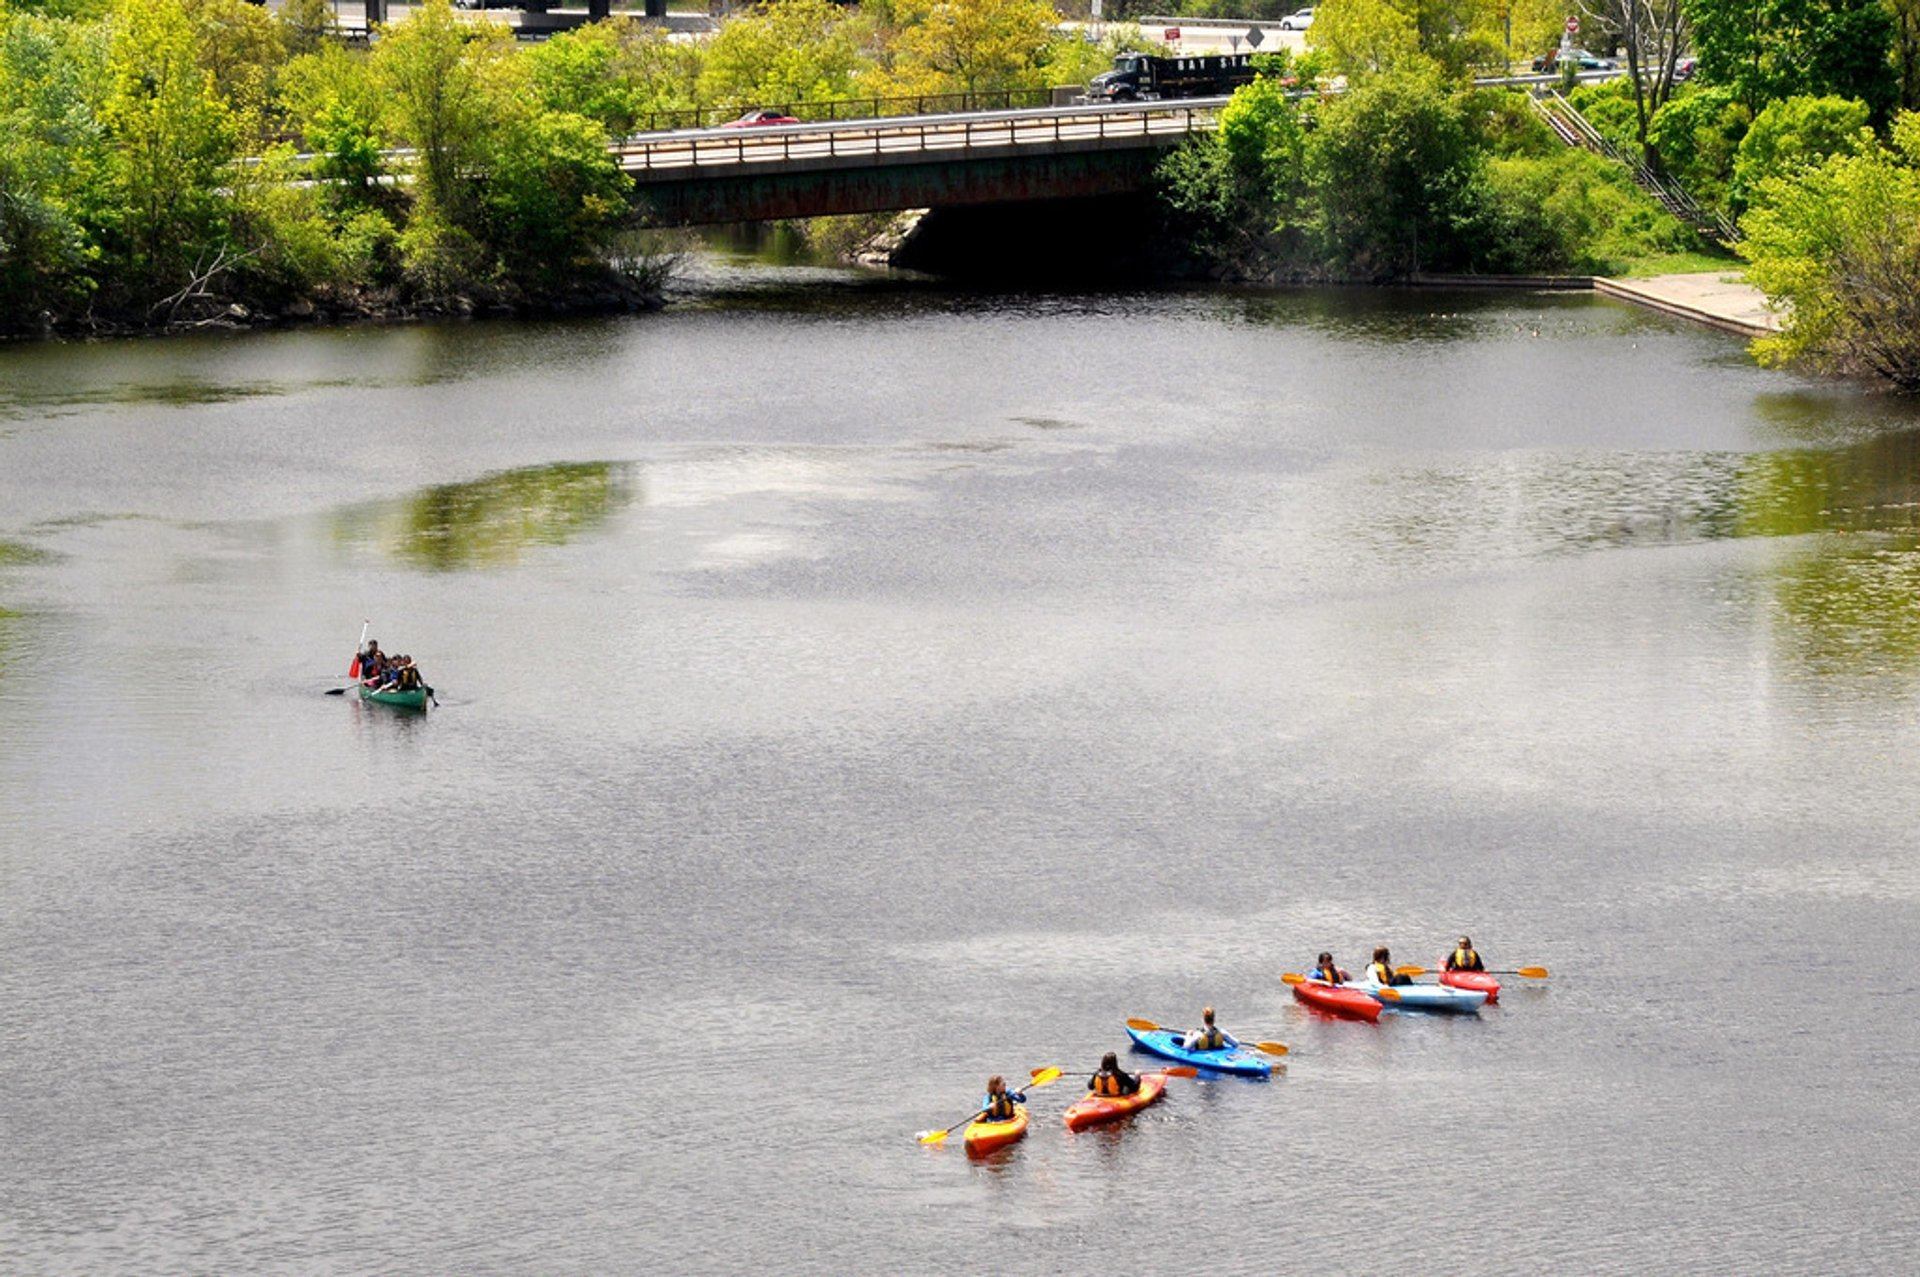 Charles River Kayaking in Boston - Best Season 2020